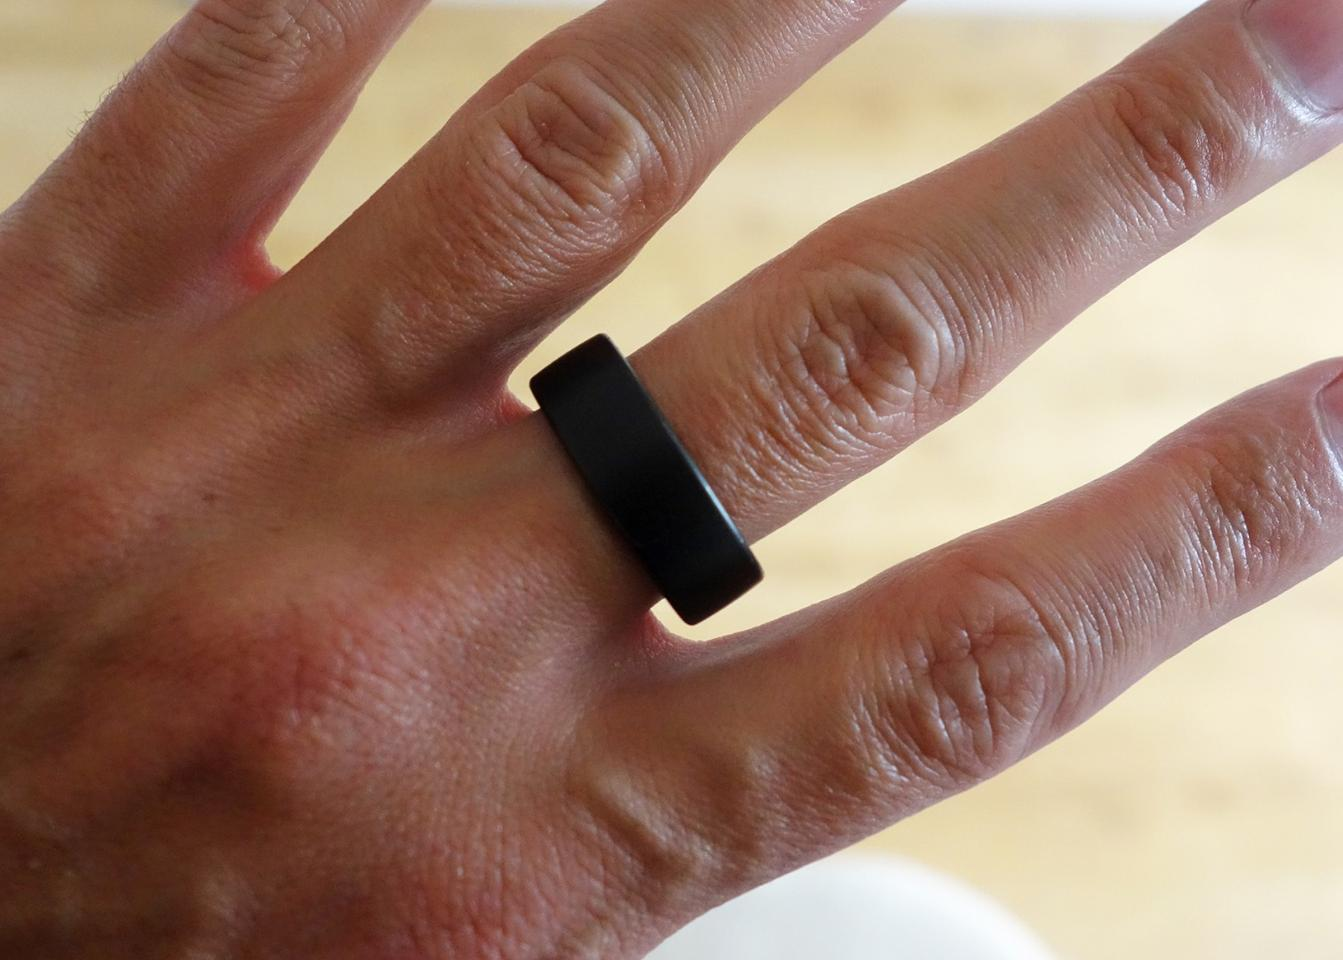 Motiv Ring review: Fitness tracking on your finger